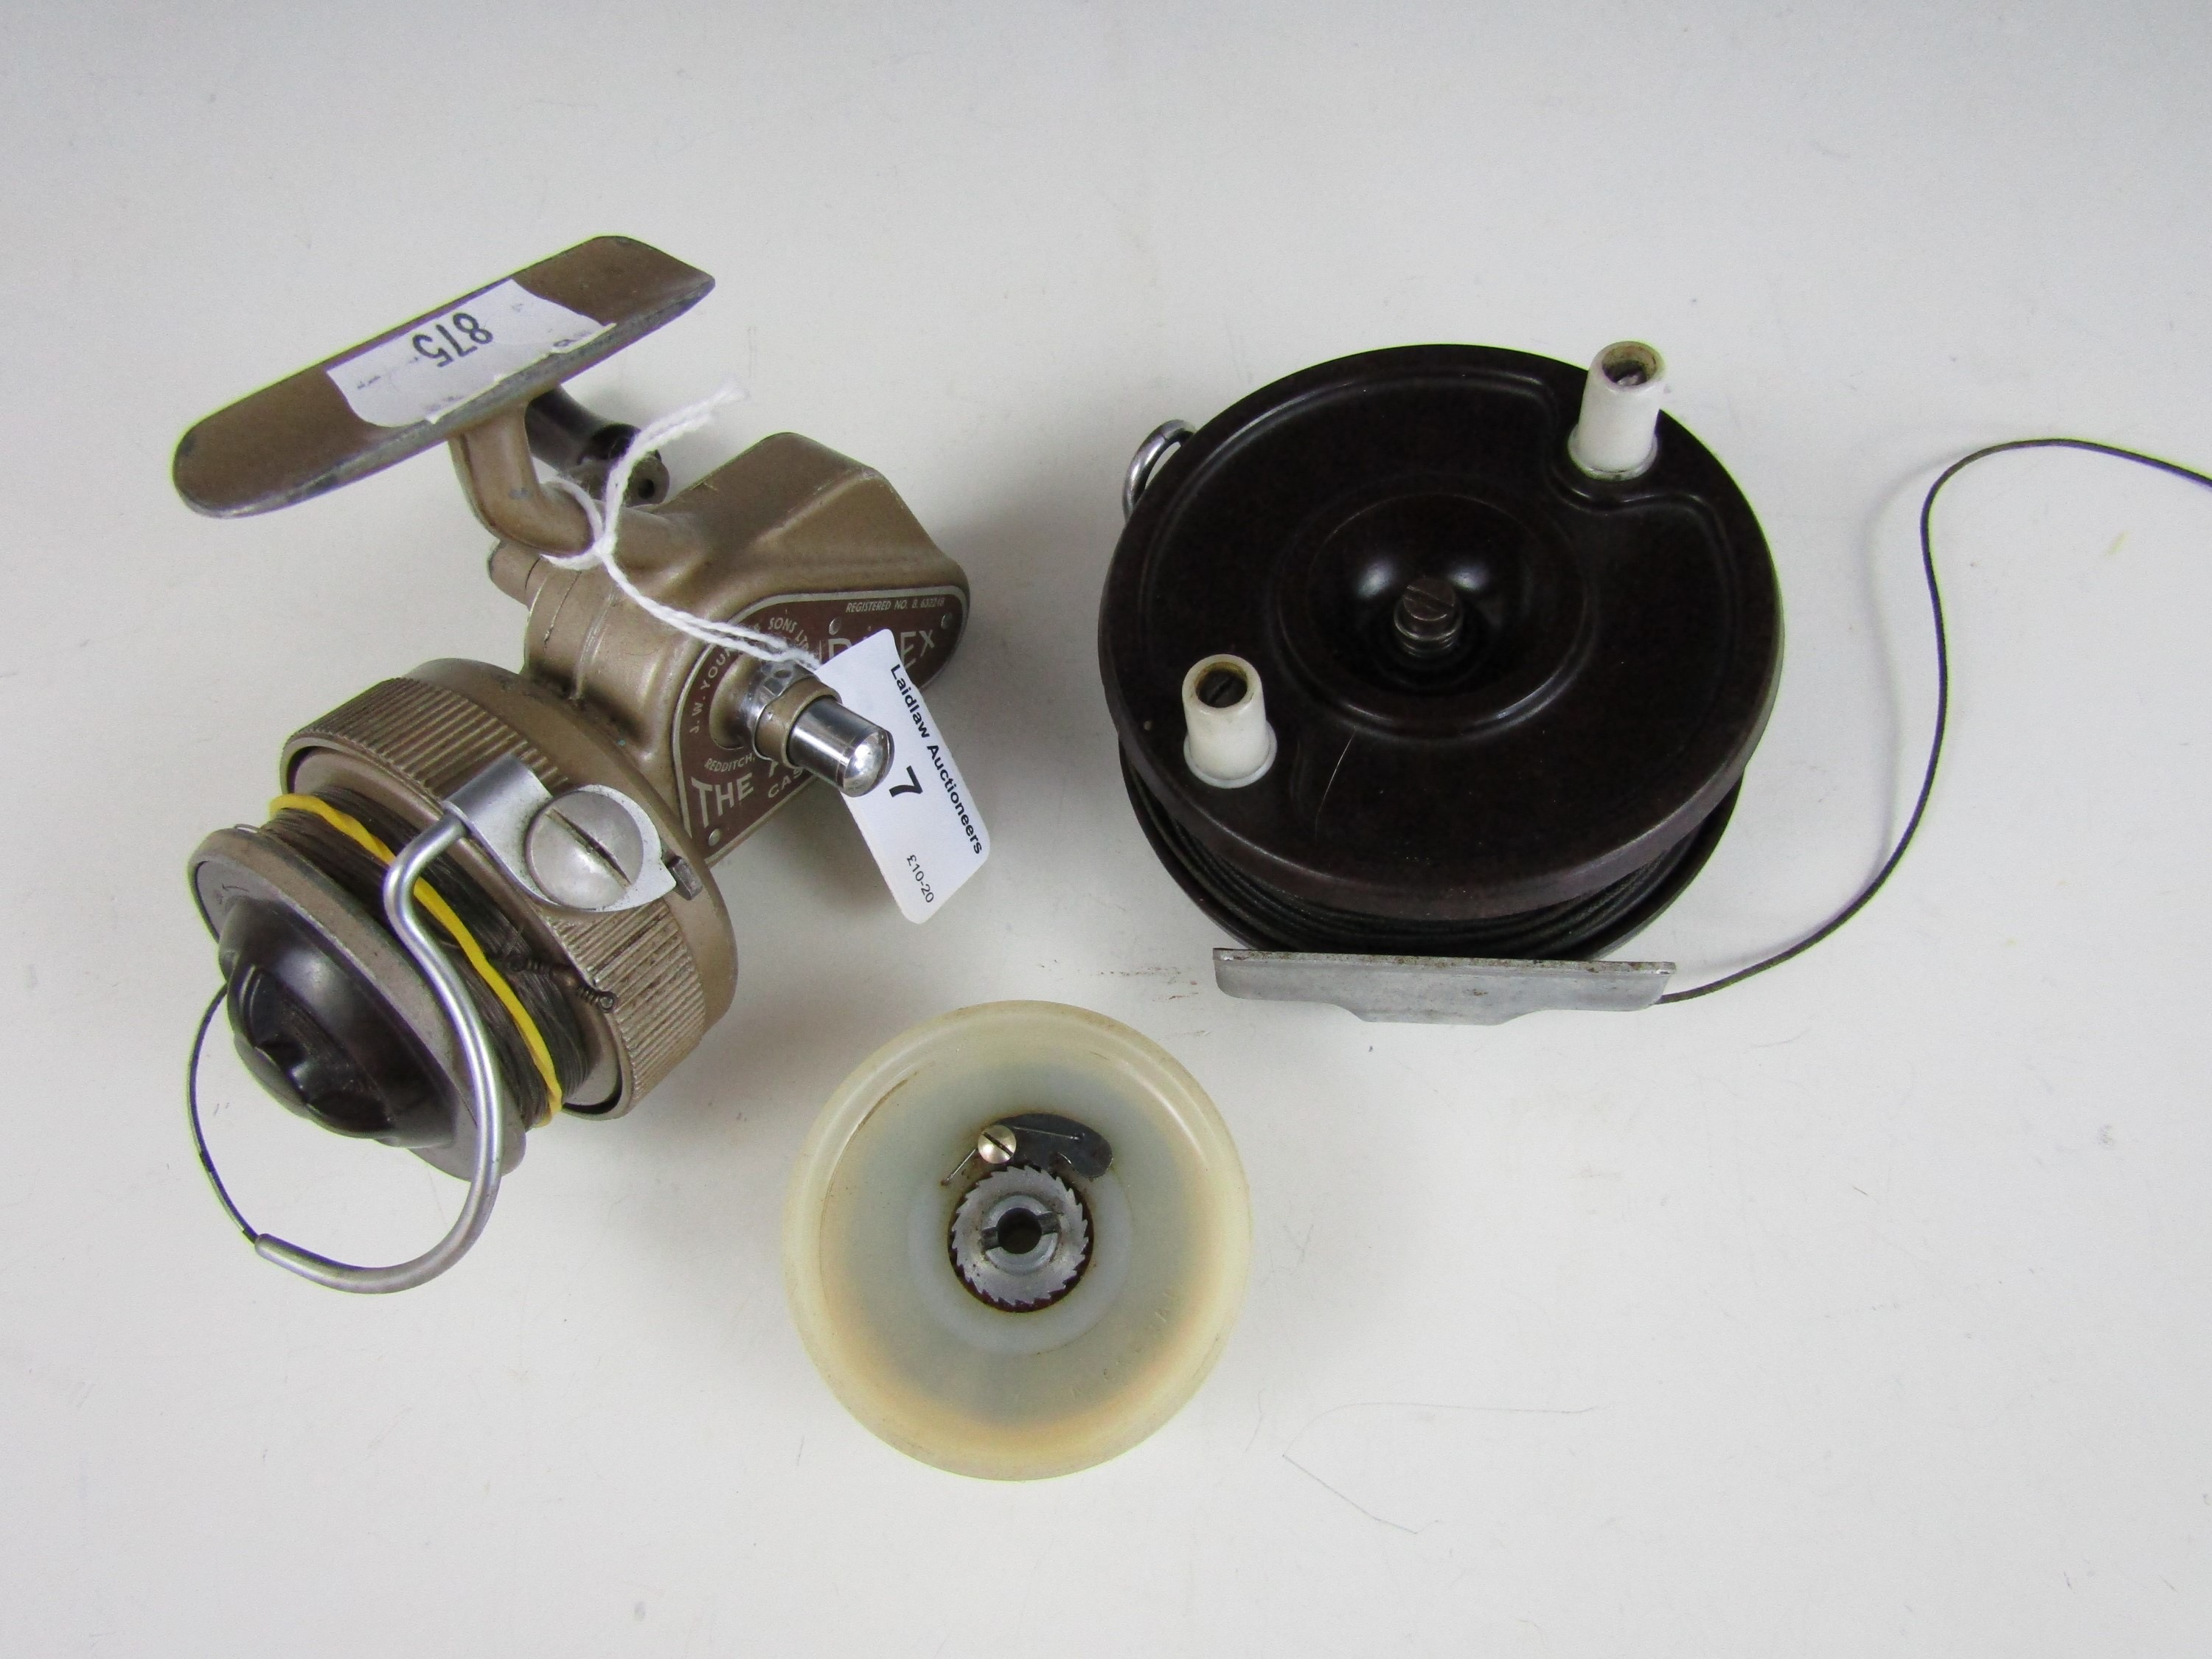 Lot 7 - A Young and Sons 'Ambidex' fishing reel together with a Paramount fly reel and a spare spool